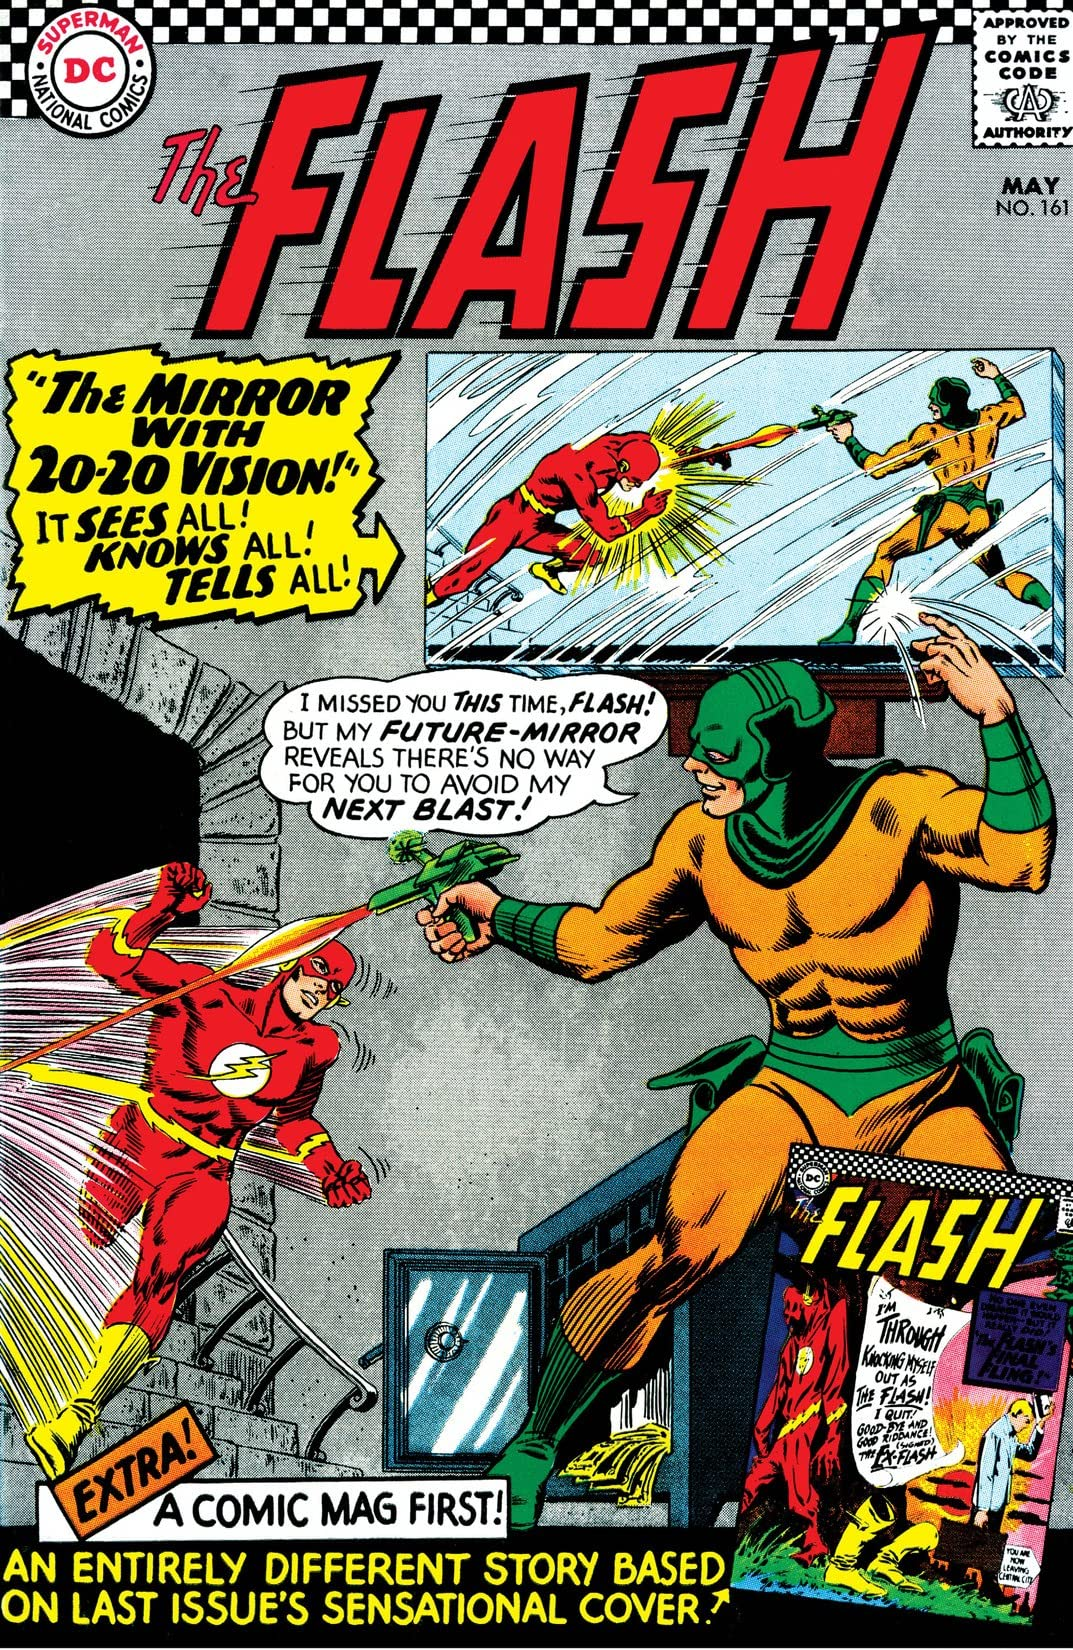 The Flash (1959-1985) #161